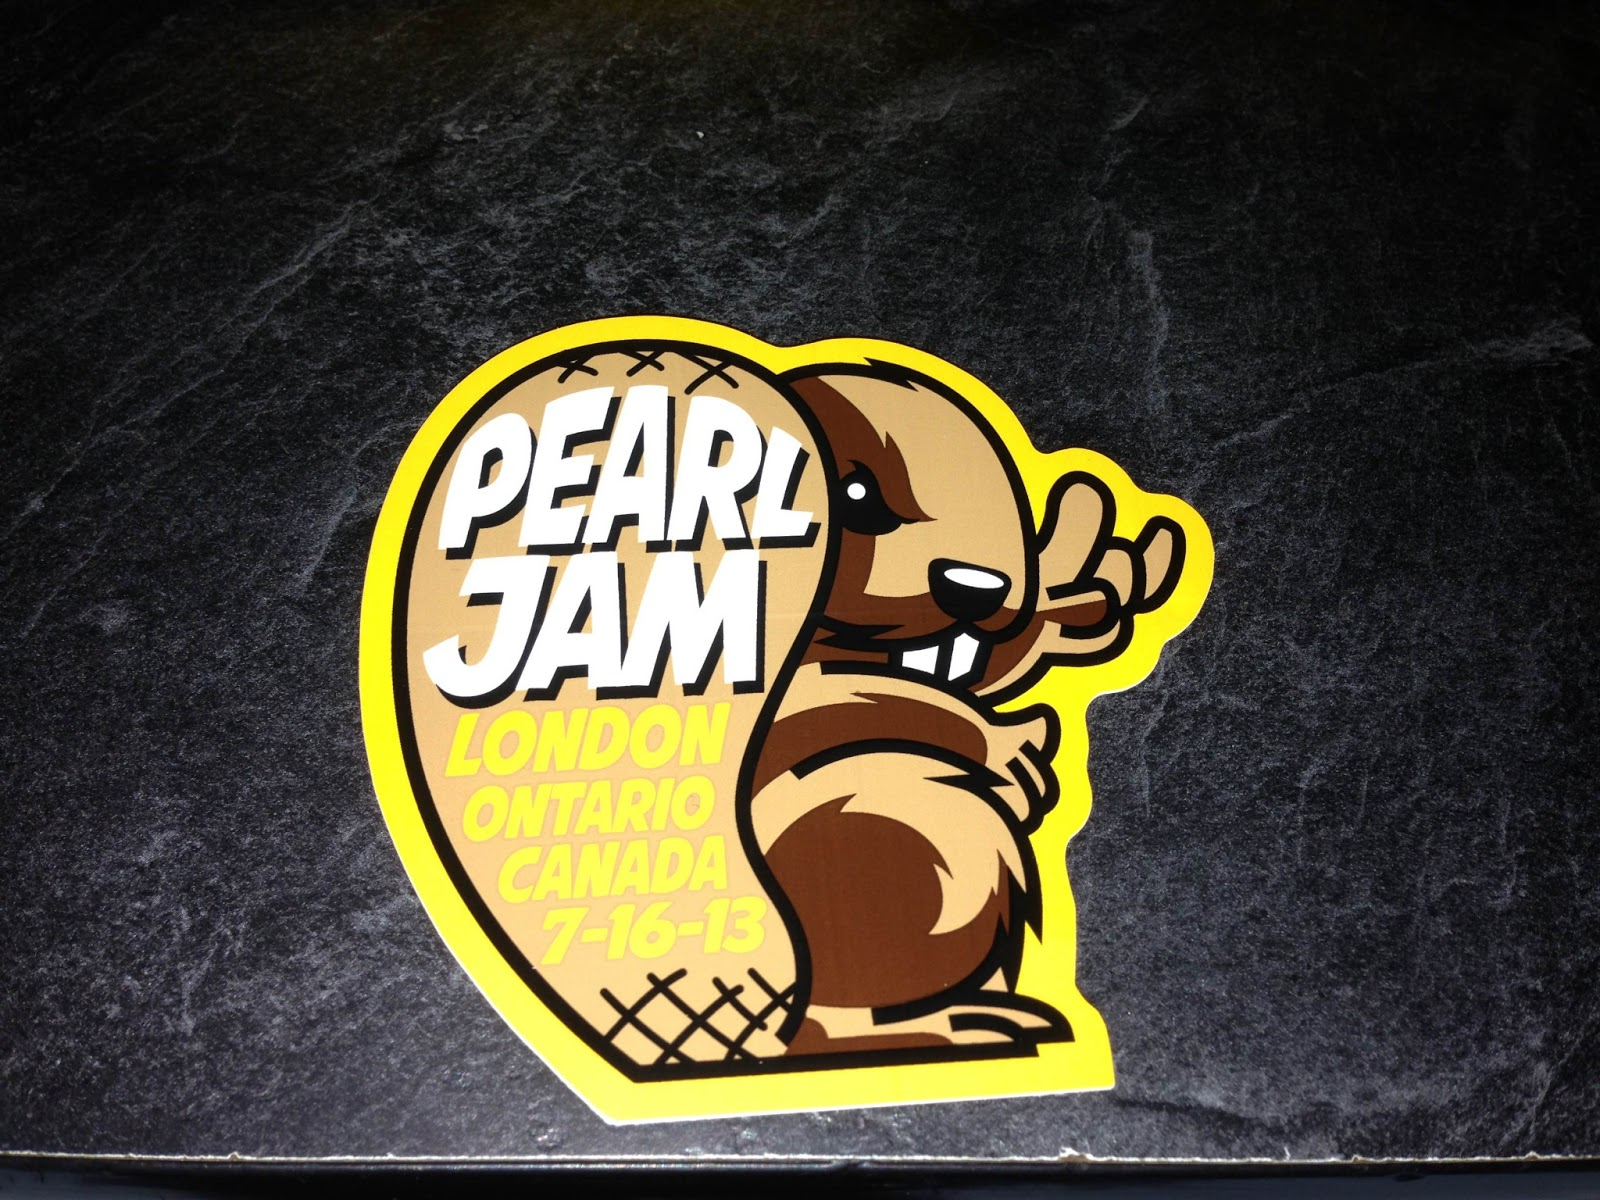 INSIDE THE ROCK POSTER FRAME BLOG Tonights Pearl Jam Poster From - Custom vinyl stickers london ontario